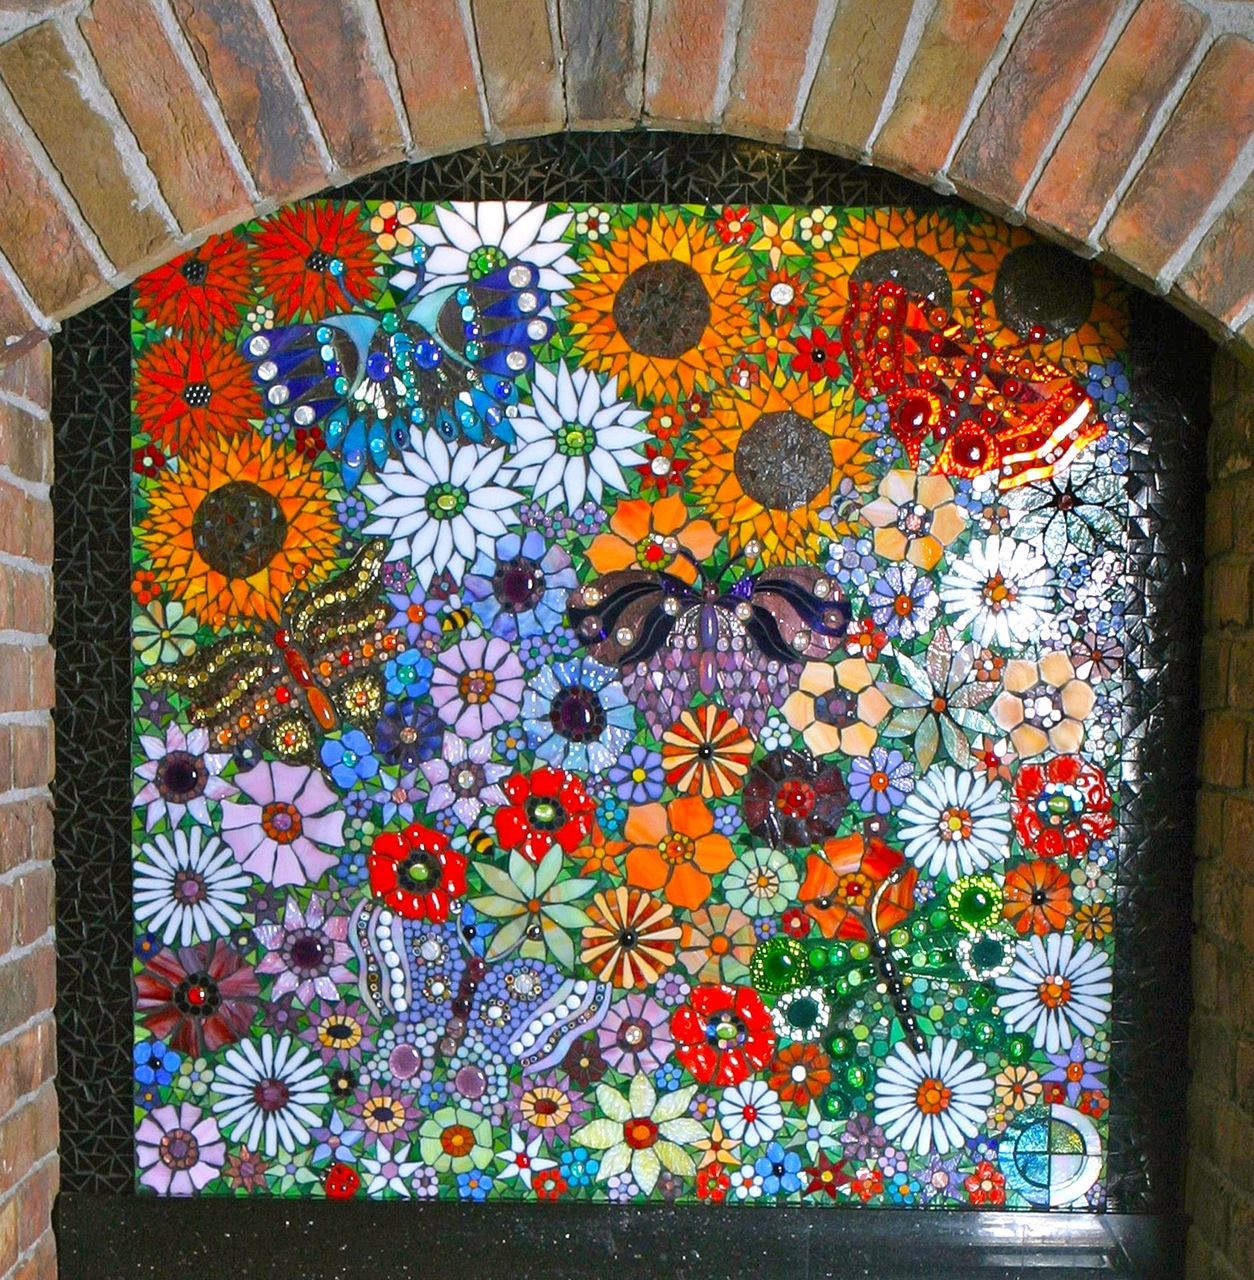 Http Jaboopee Blogspot Com P Mosaic Work Gold Flowers Photography Html